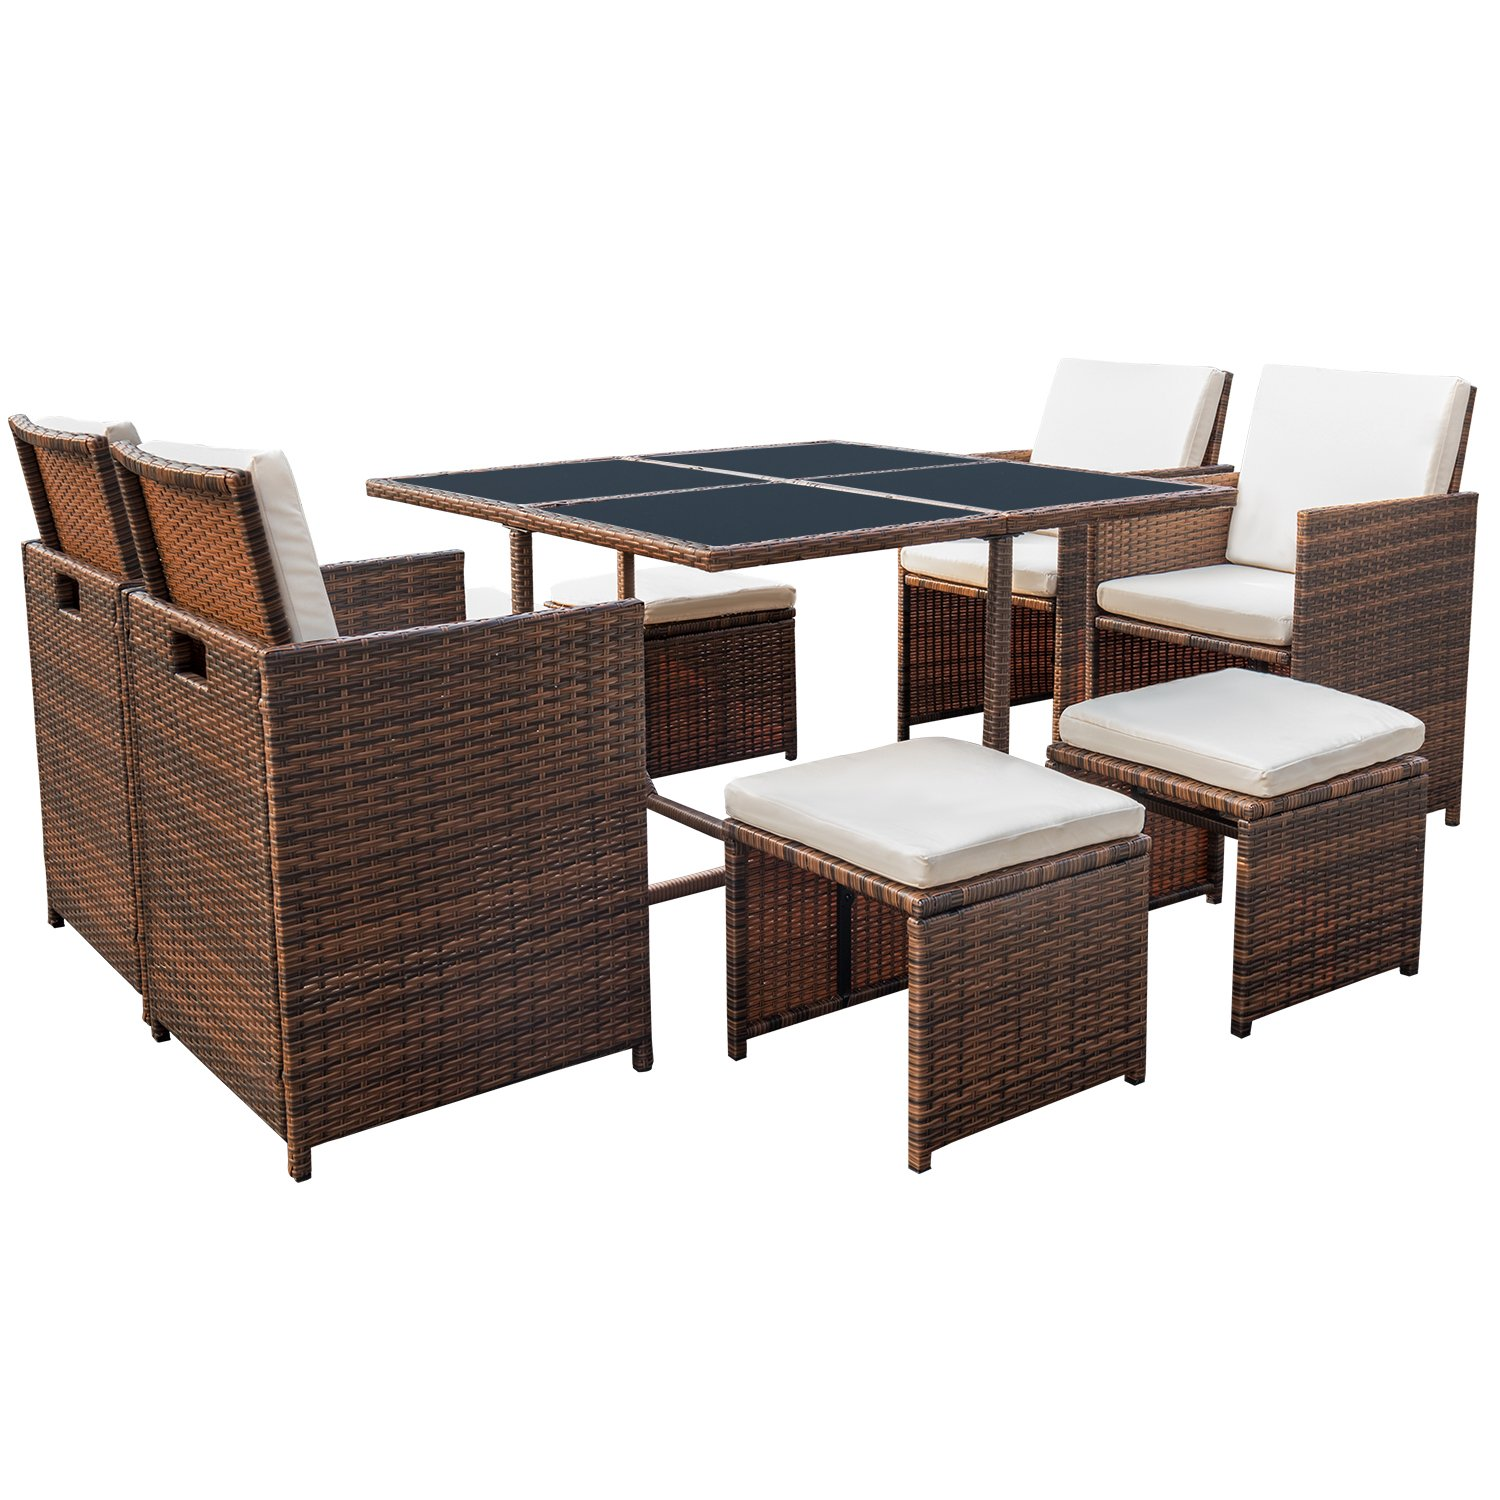 Devoko 9 Pieces Patio Dining Sets Outdoor Space Saving Rattan Patio Furniture sets Clearance with Ottoman and Cushions (Brown) by Devoko (Image #1)